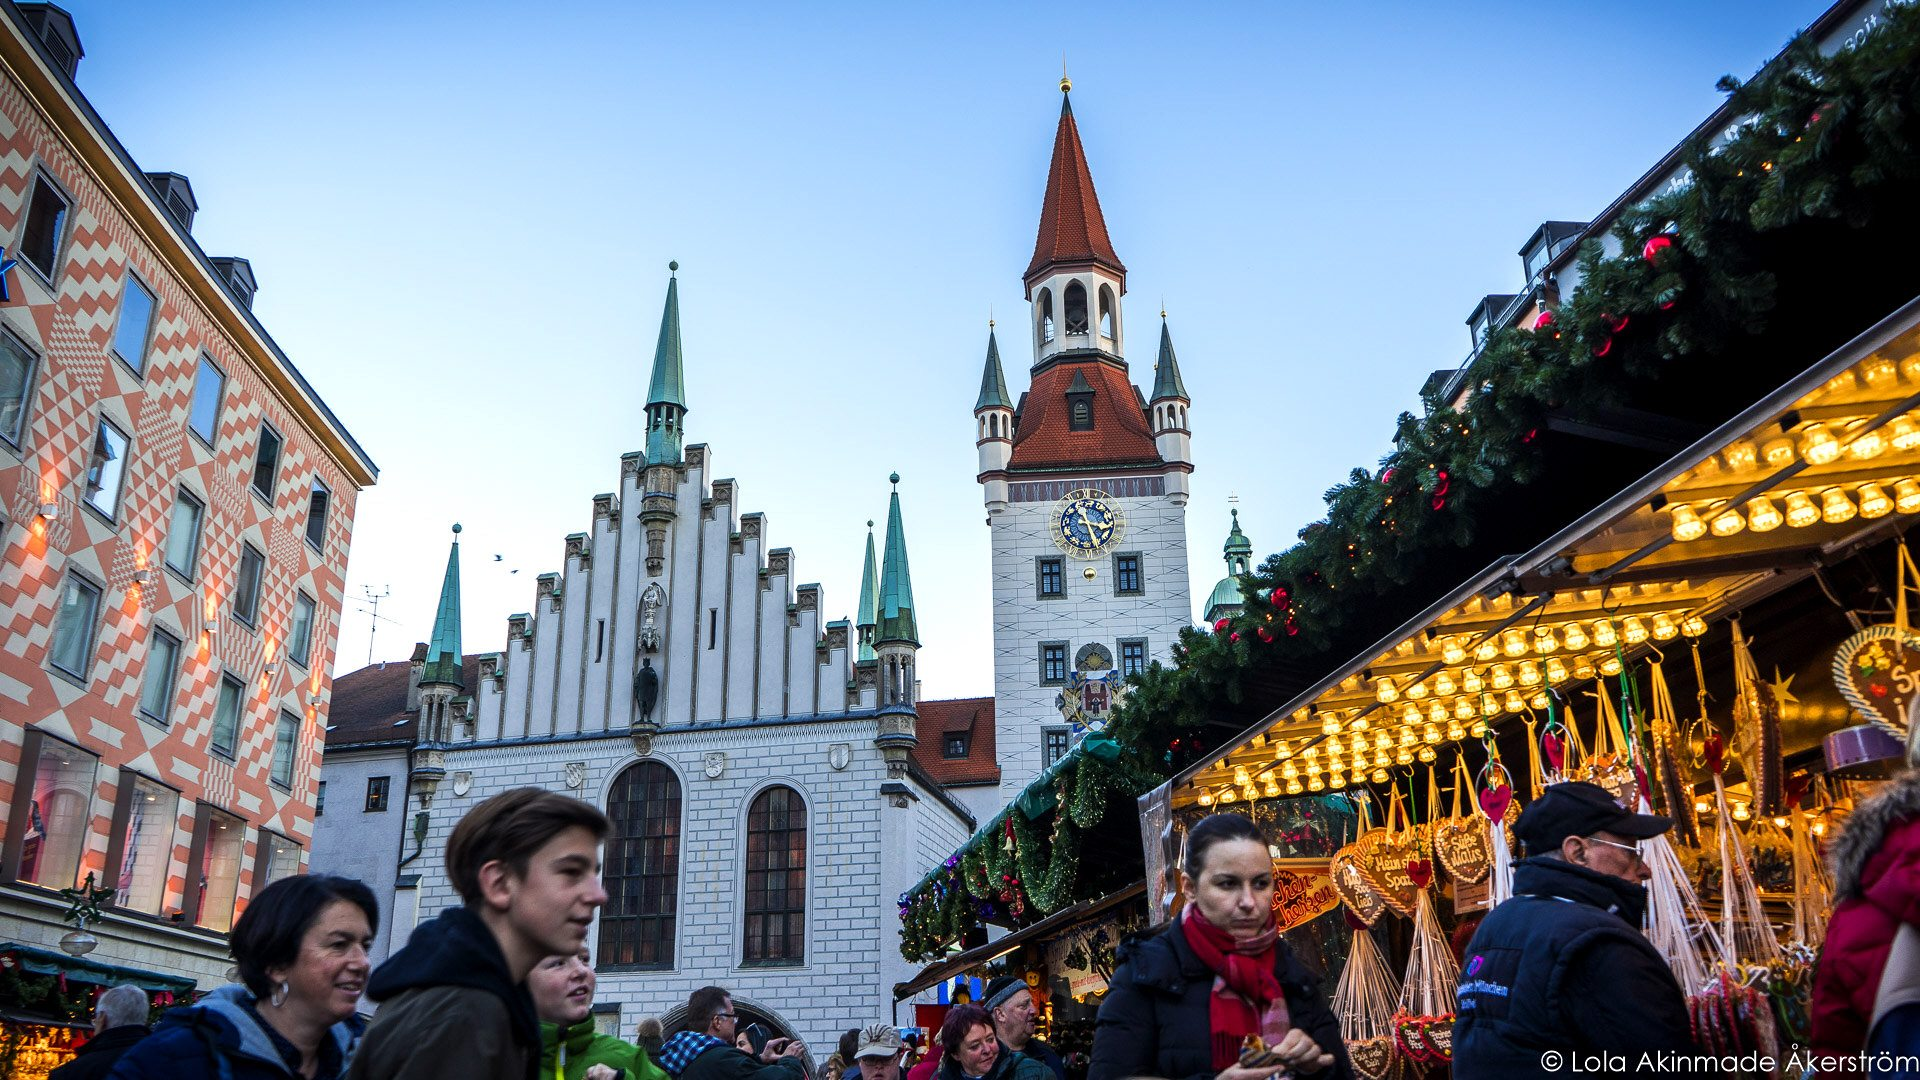 Christmas Market Munich - Christmas Markets in Munich - Munich Christmas Market